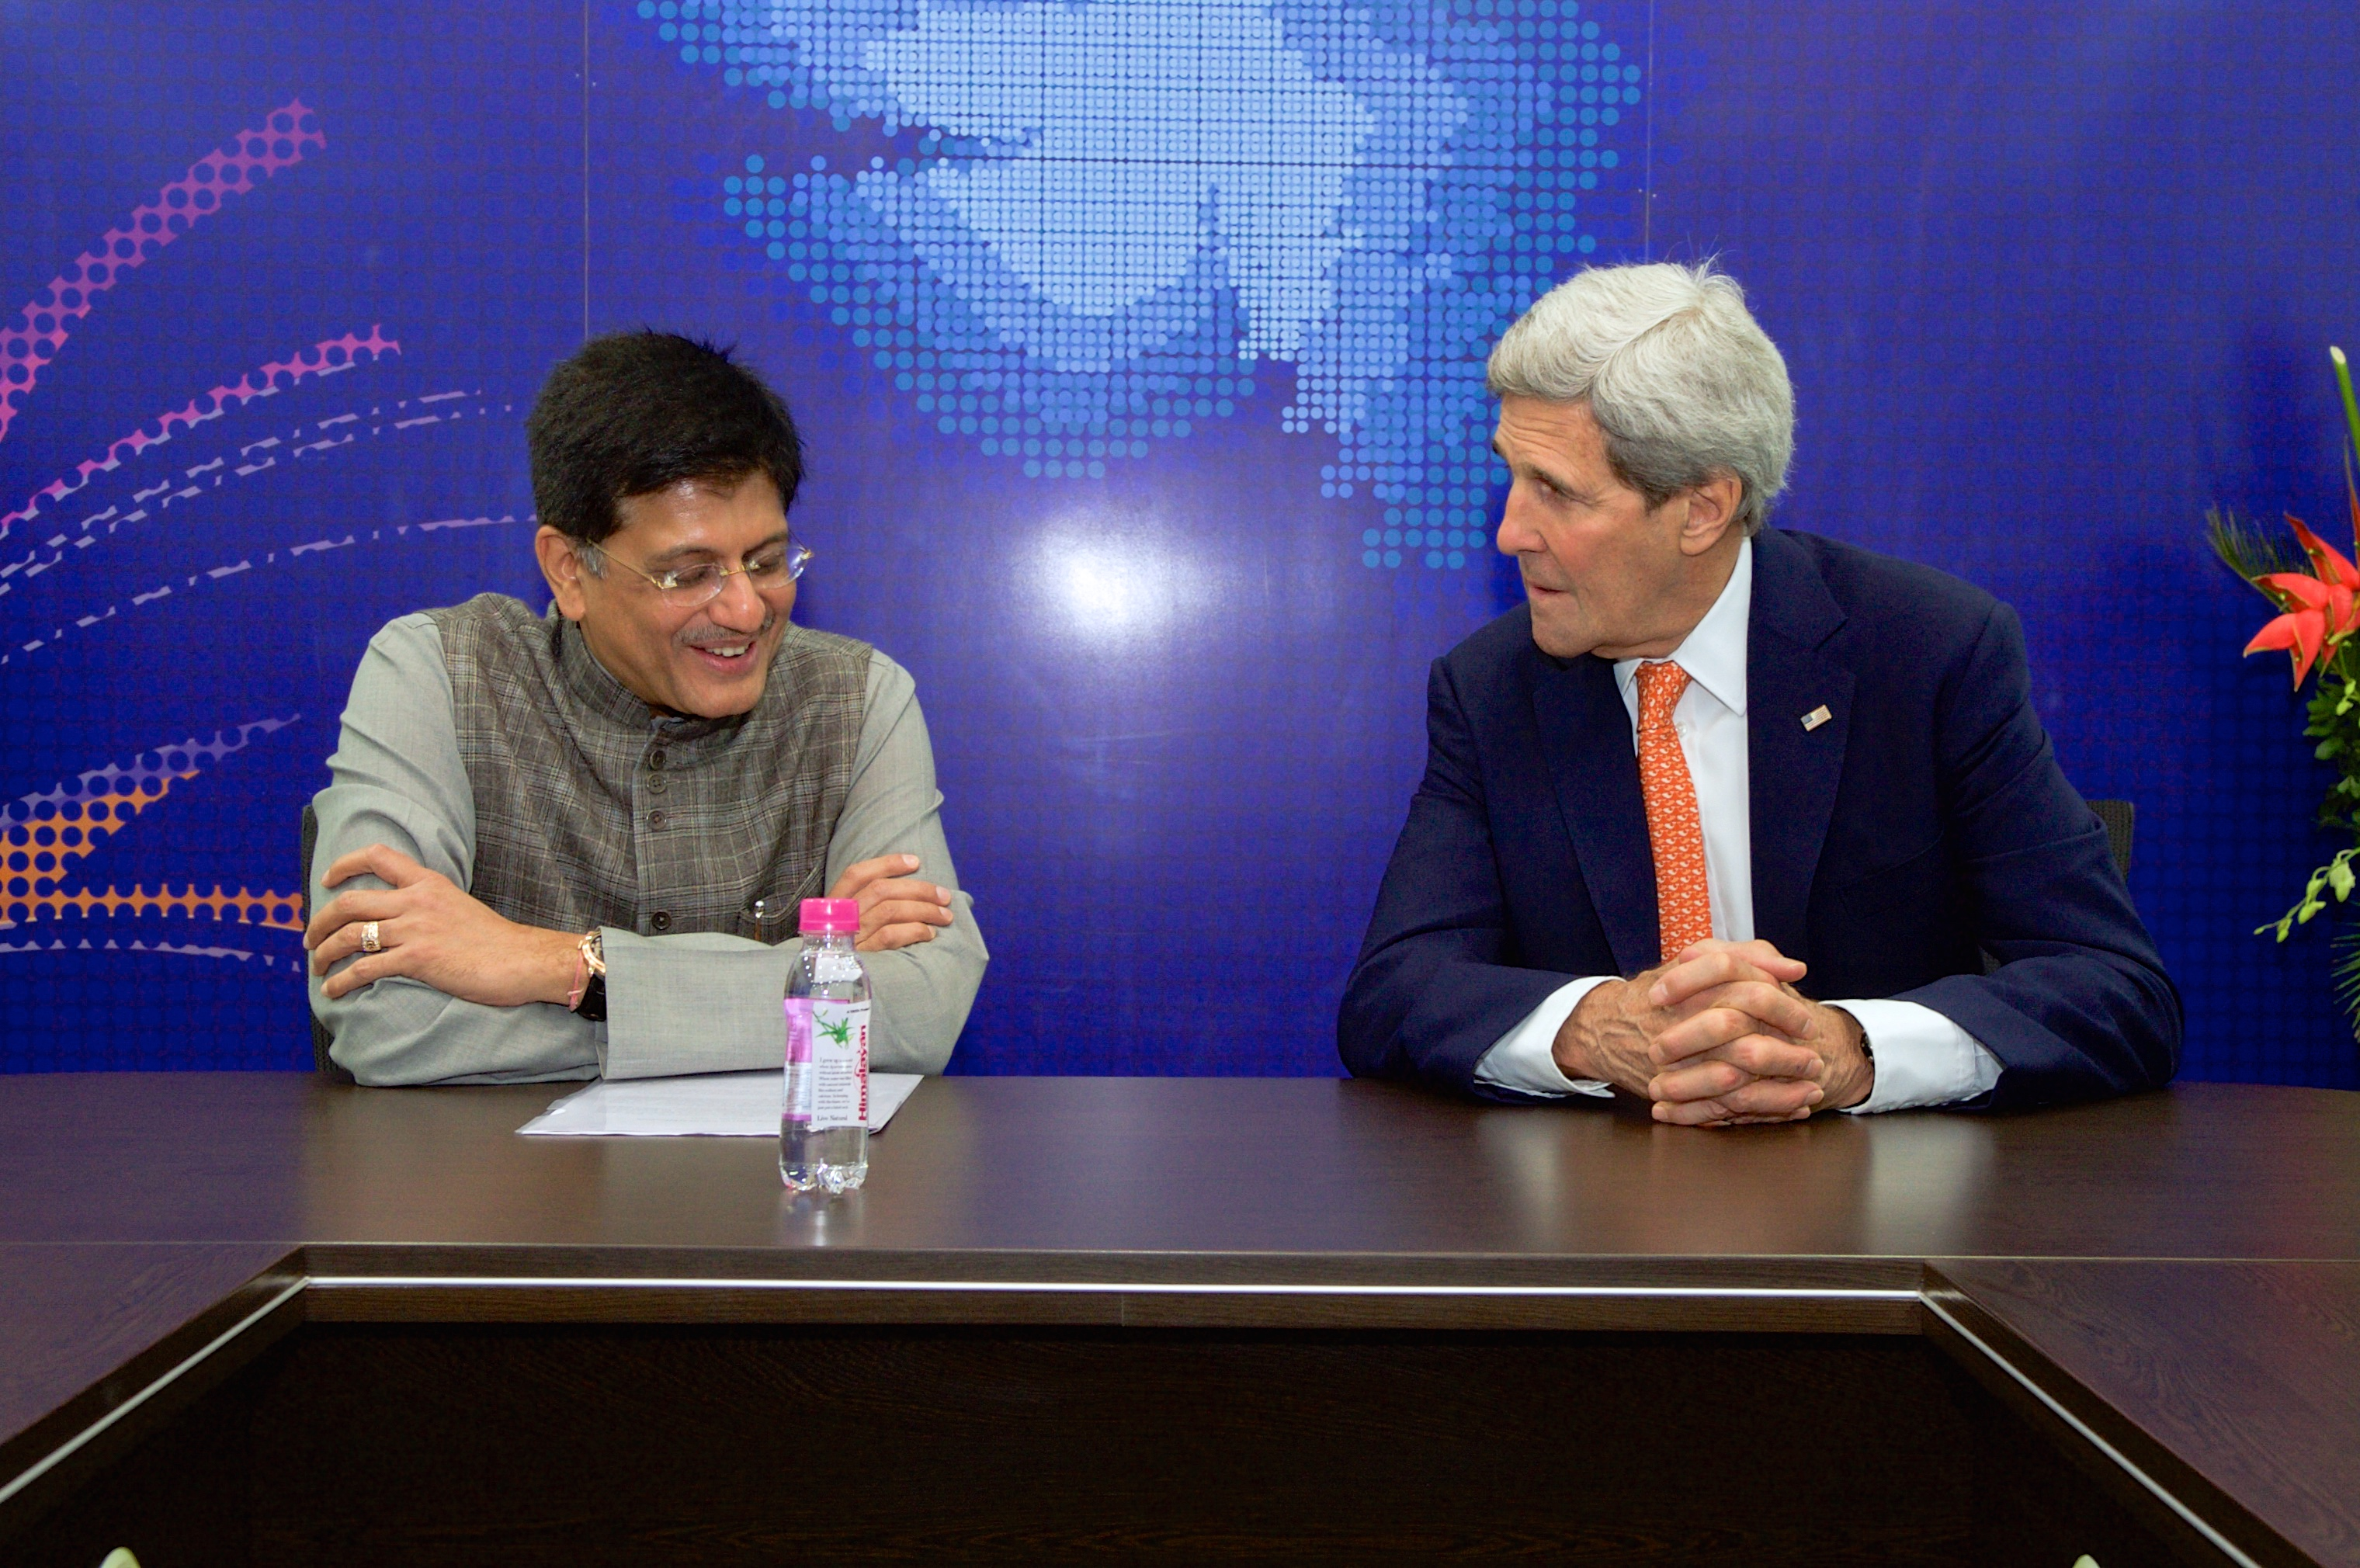 Commerce and Industry Minister Piyush Goyal (left) with former US Senator John Kerry. Photo courtesy: Wikimedia